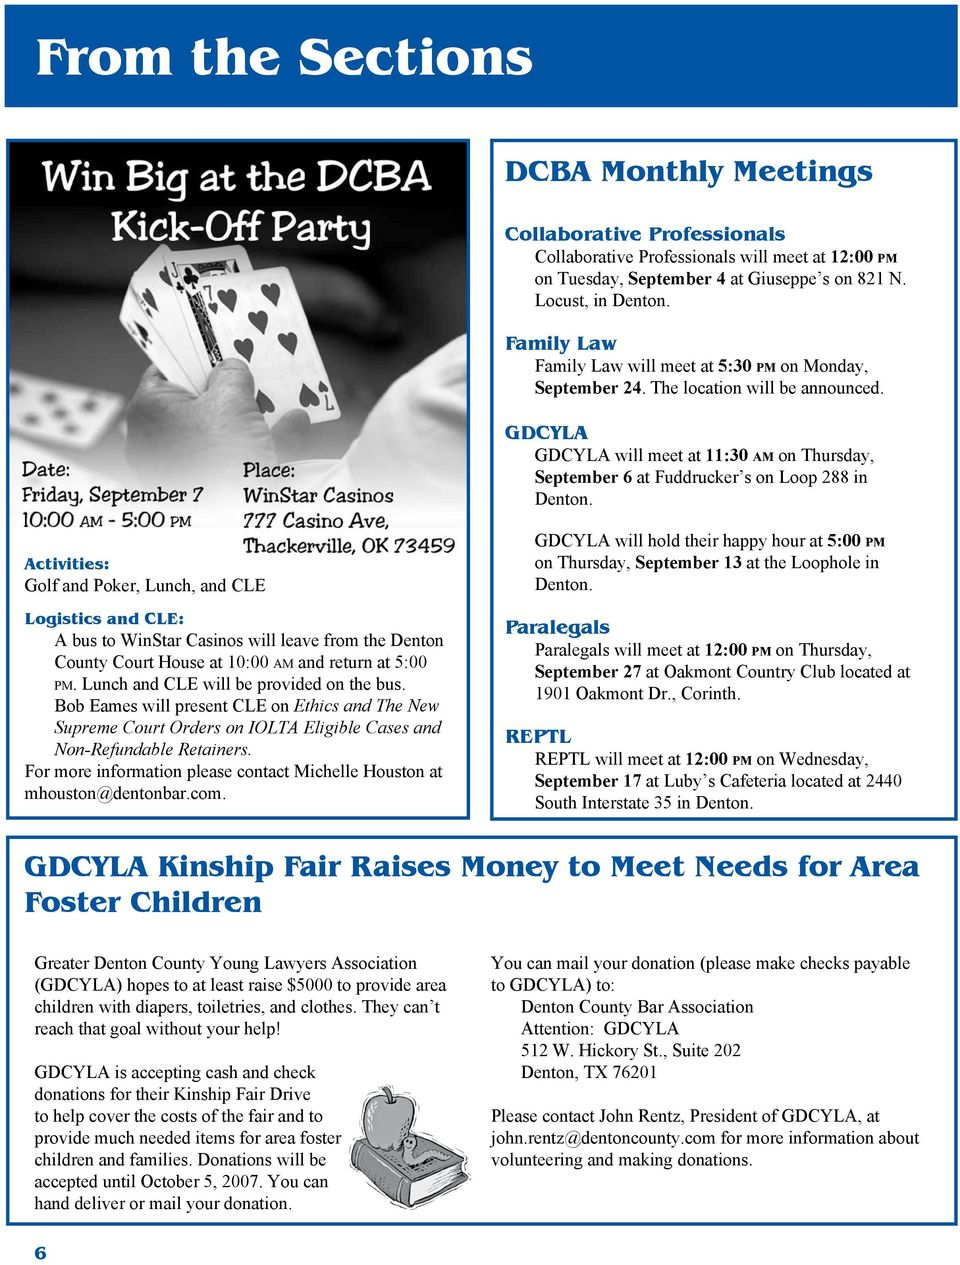 Activities: Golf and Poker, Lunch, and CLE Logistics and CLE: A bus to WinStar Casinos will leave from the Denton County Court House at 10:00 am and return at 5:00 pm.